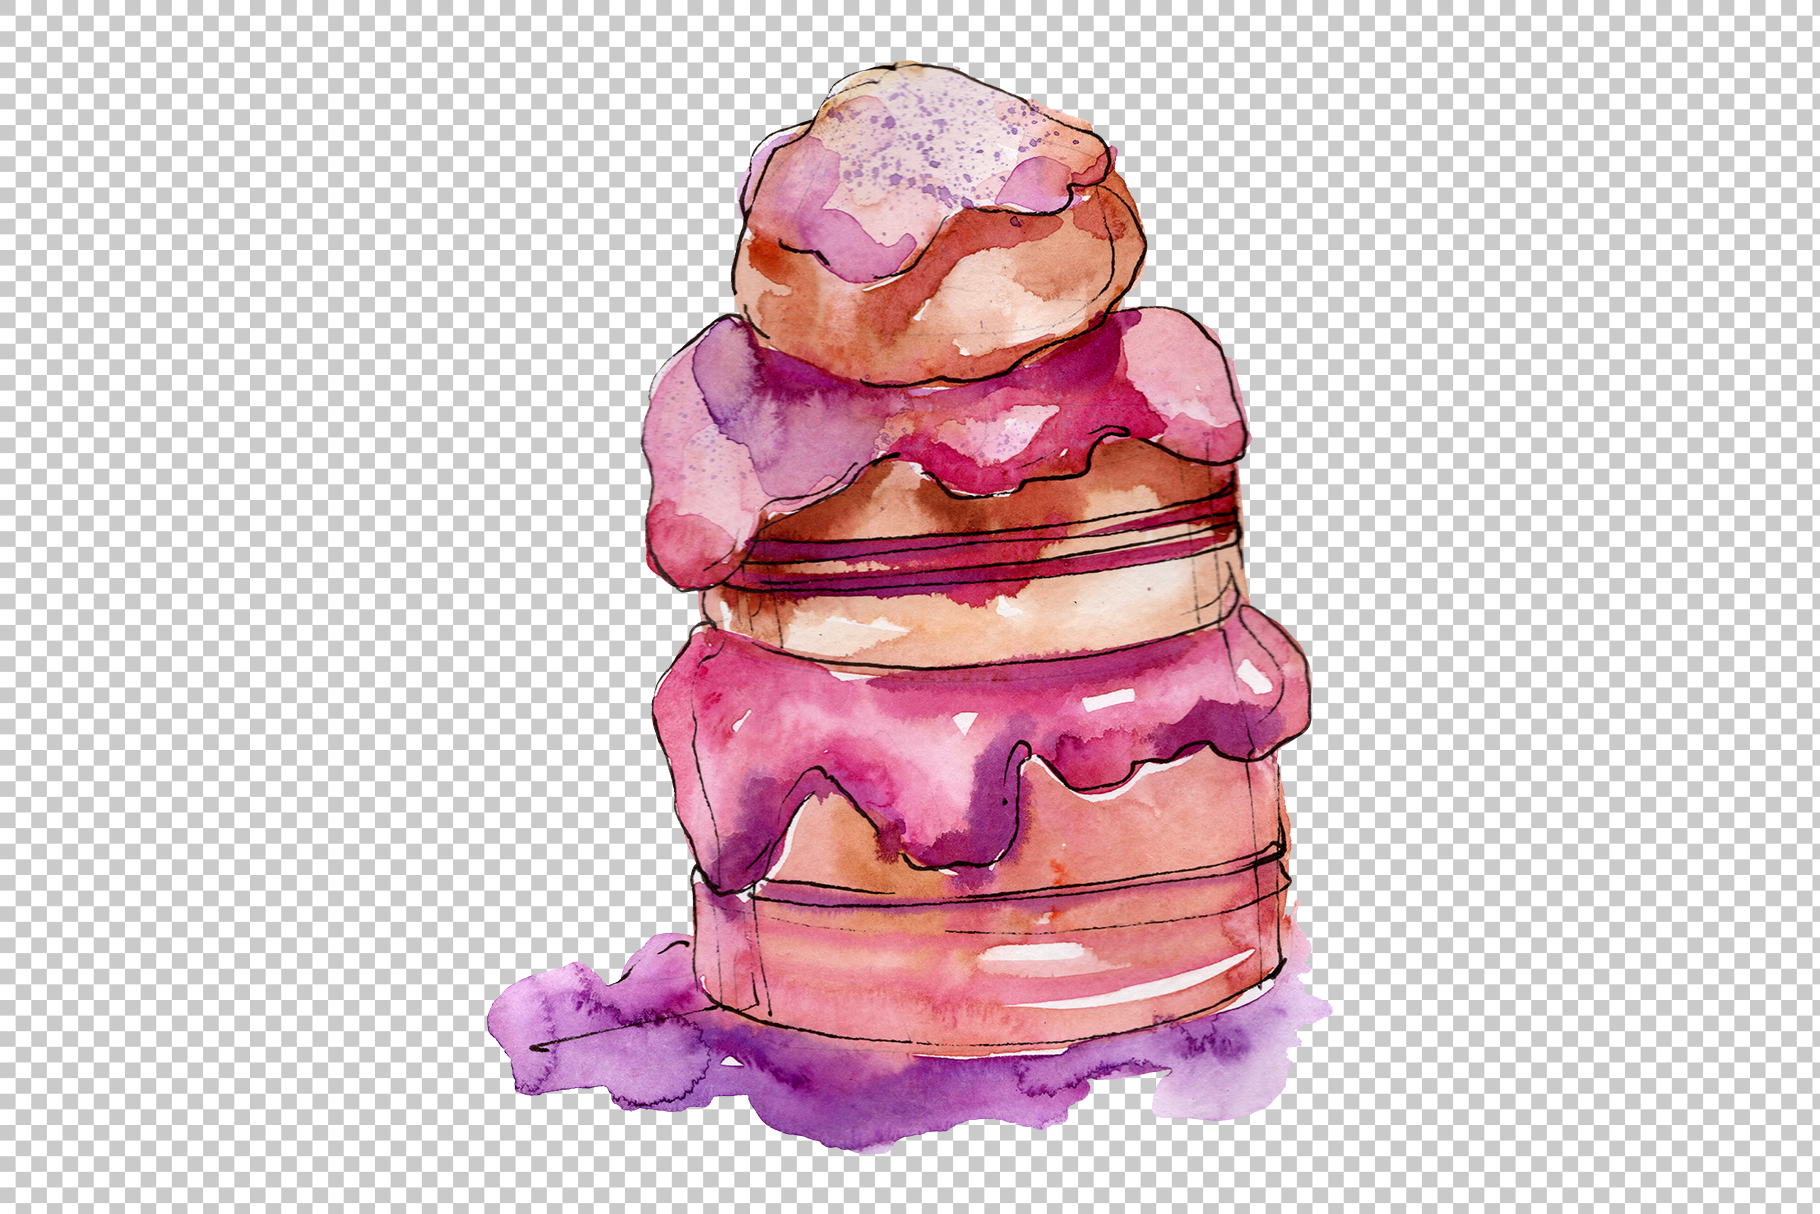 Dessert Appetizing Watercolor png example image 5